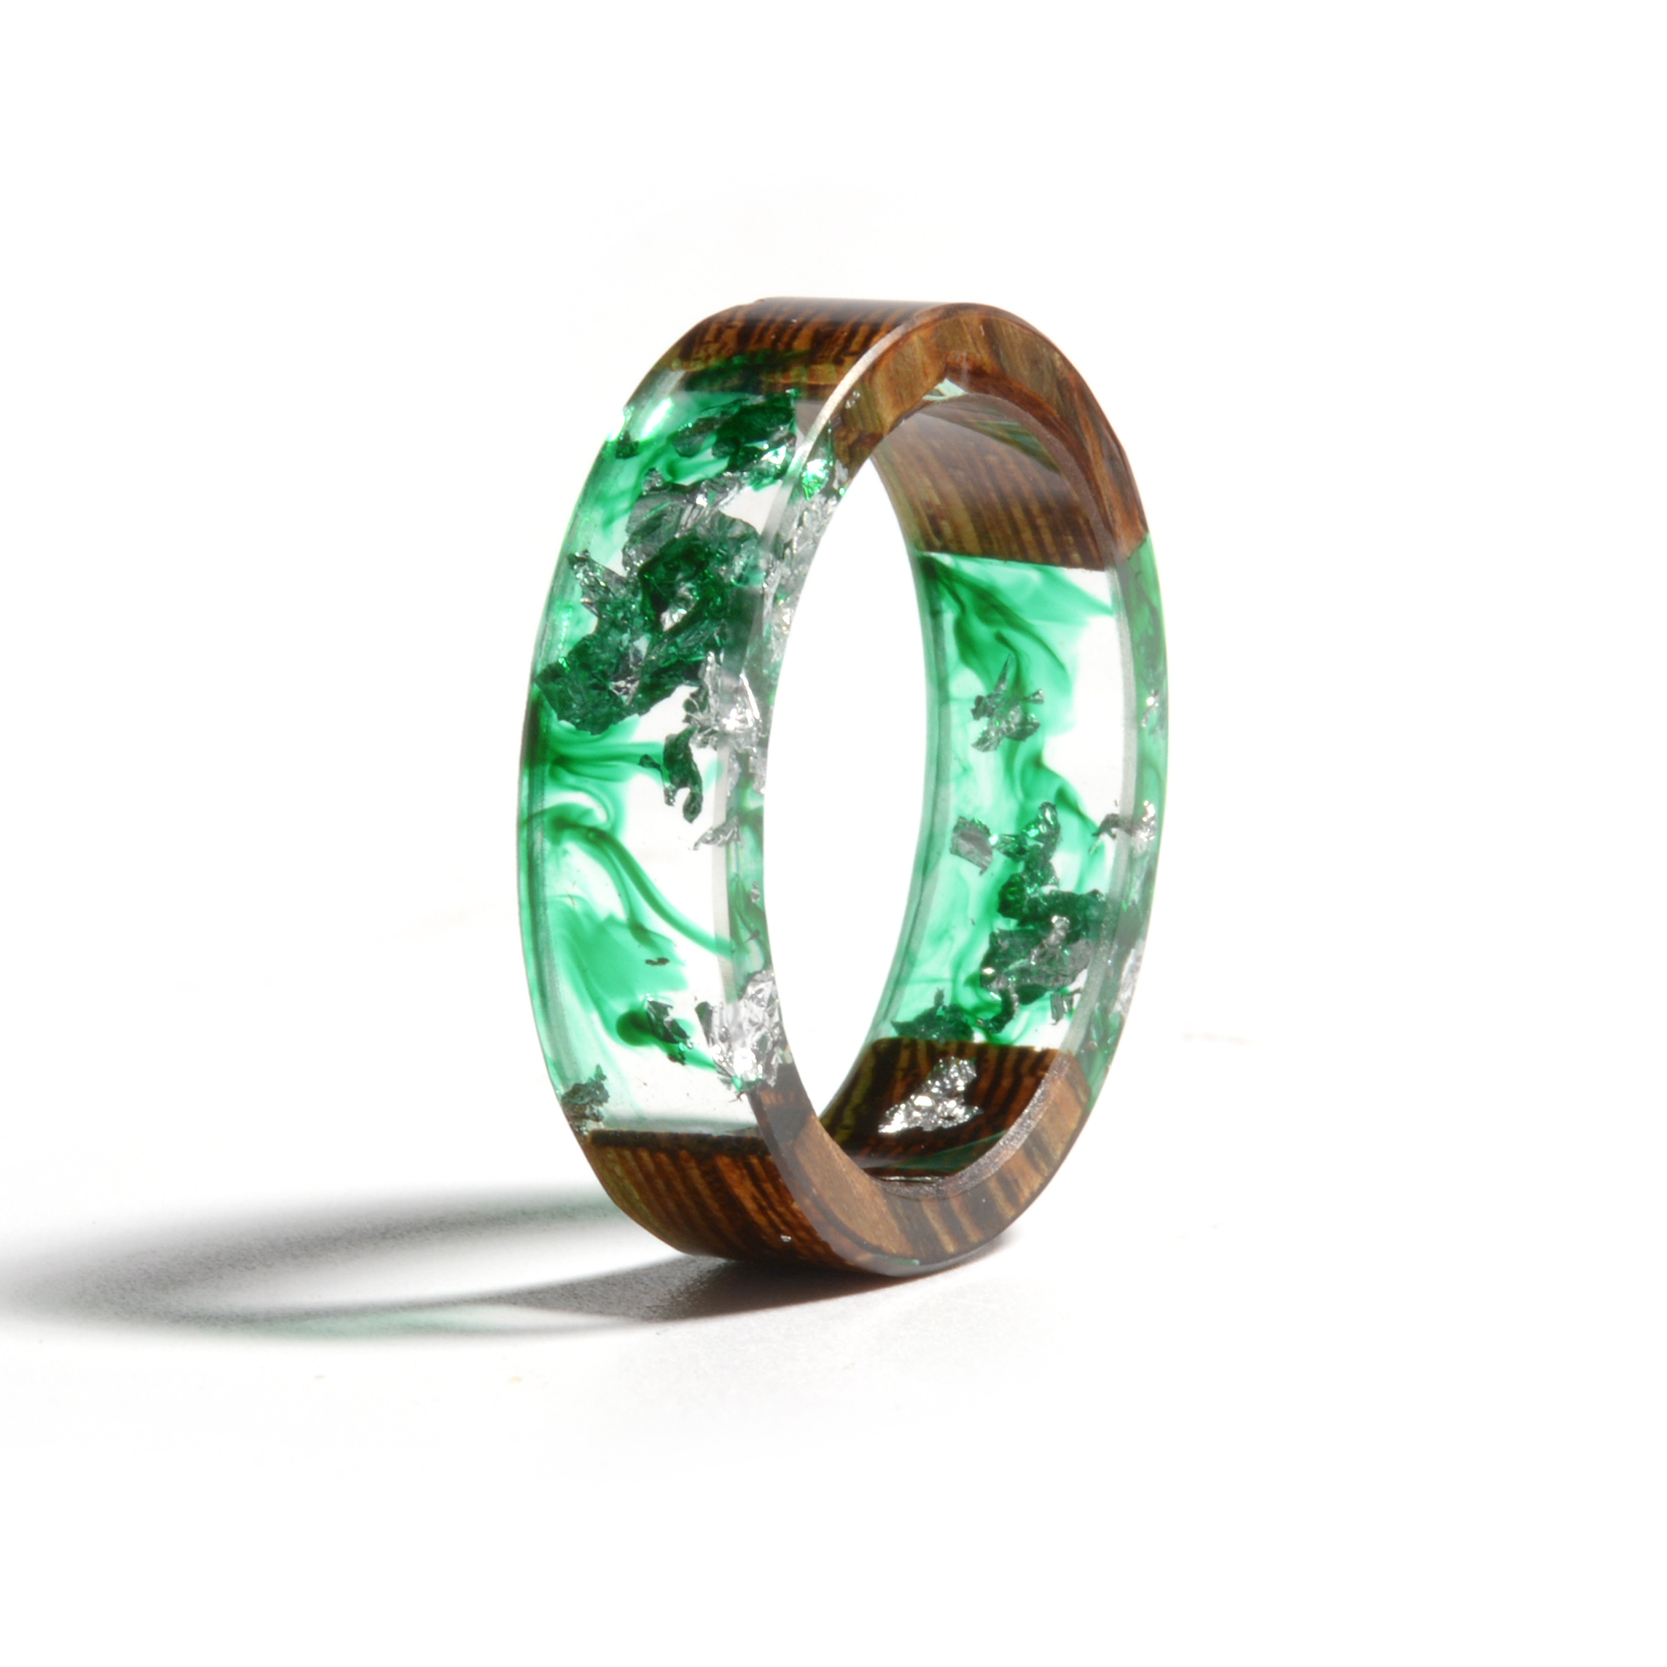 Wood Resin Ring Transparent Epoxy Resin Ring Fashion Handmade Dried Flower Wedding Jewelry Love Ring for Women 2019 New Design 5